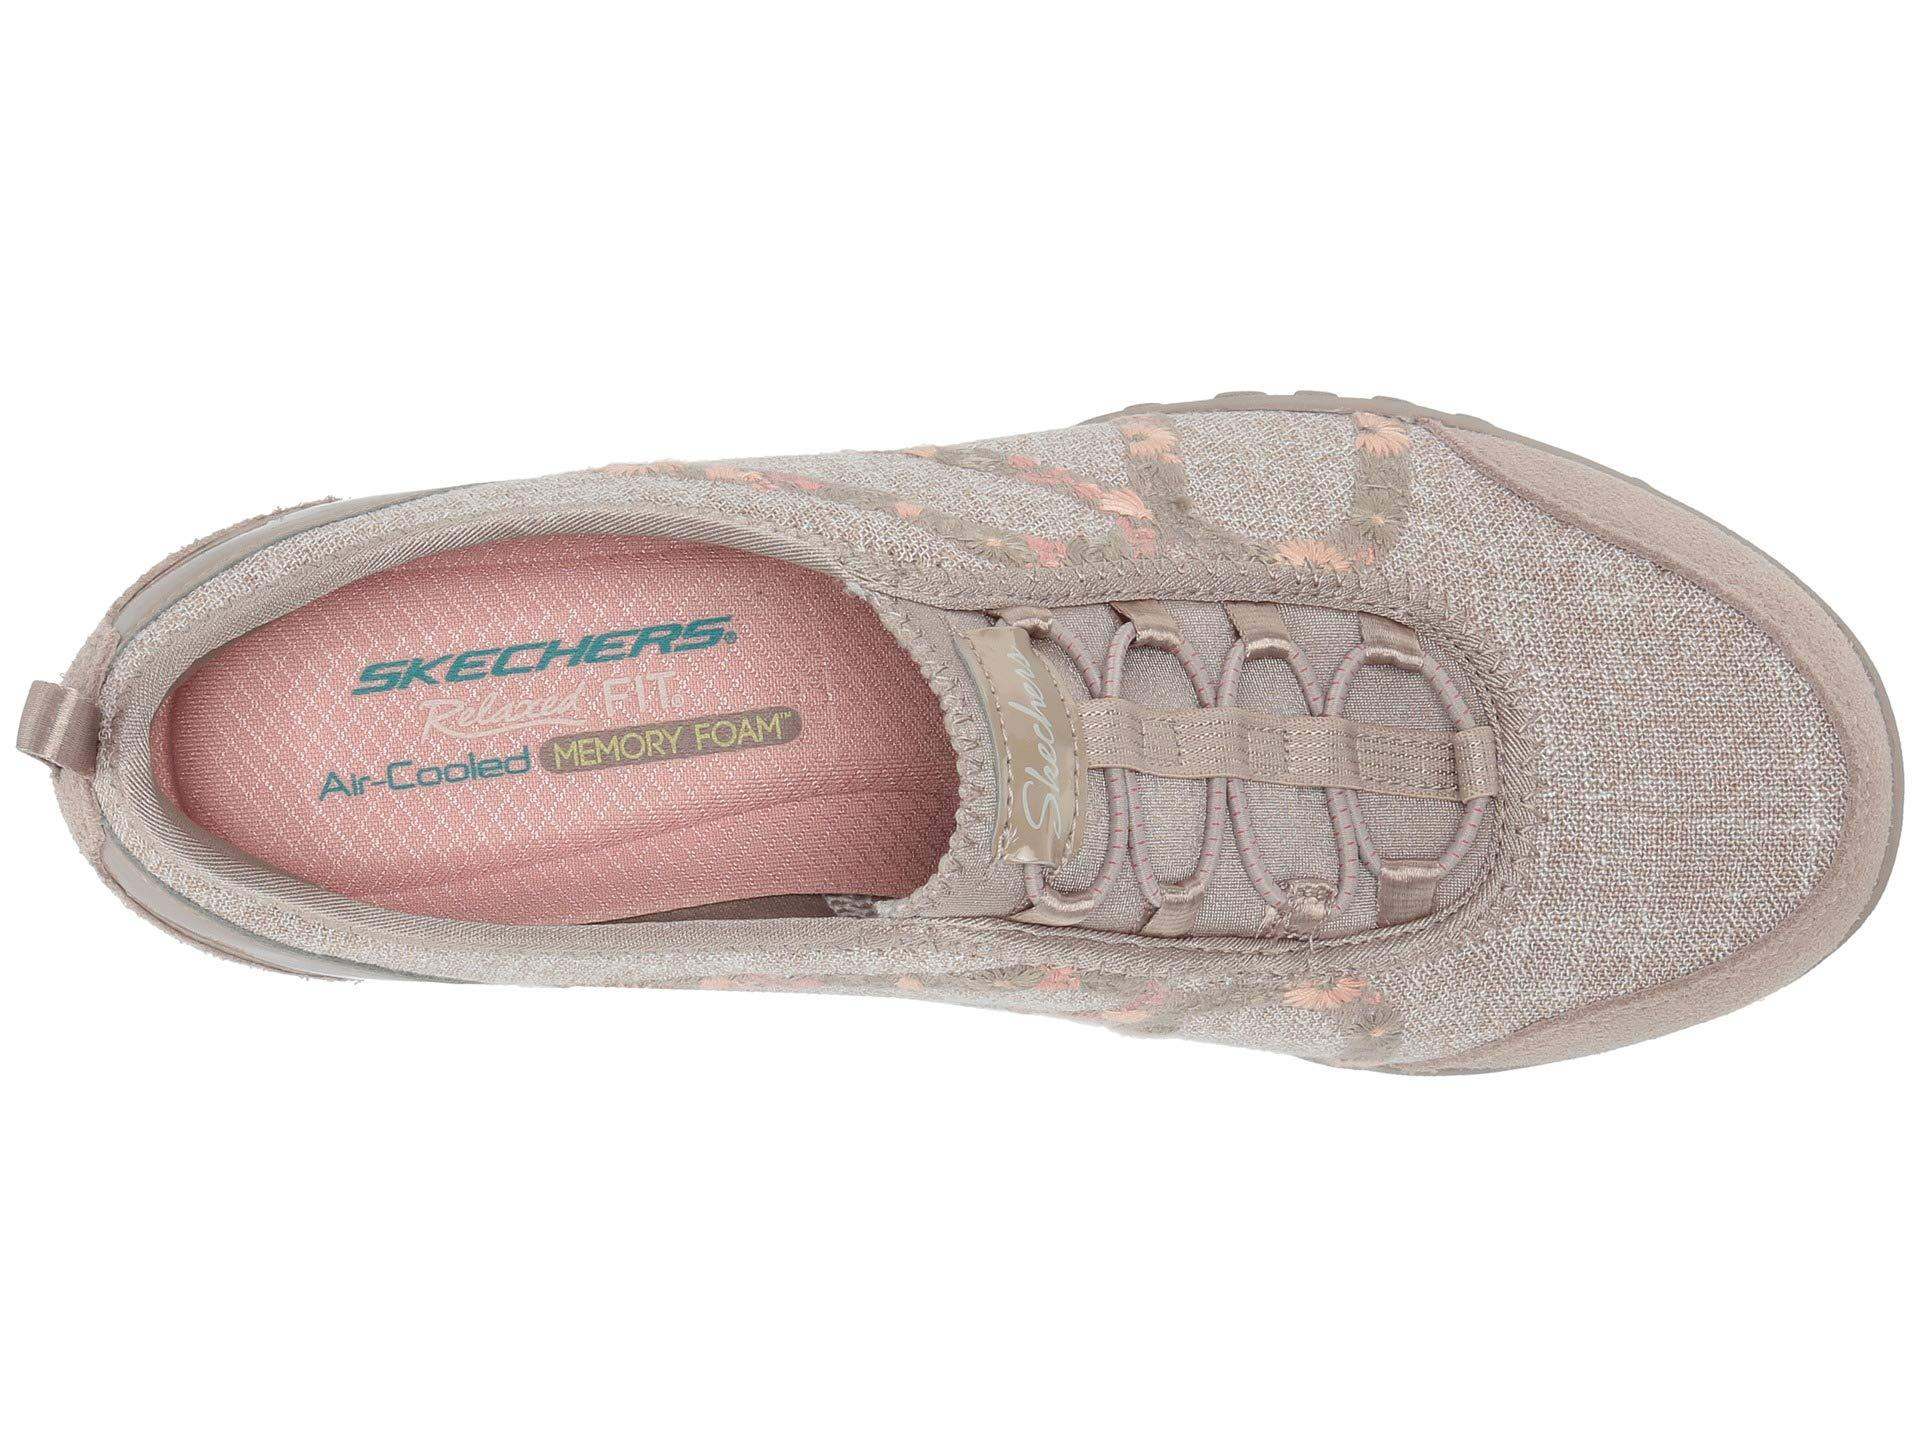 low priced 13039 c7f3a Skechers - Multicolor Breathe-easy - Garden Joy - Lyst. View fullscreen